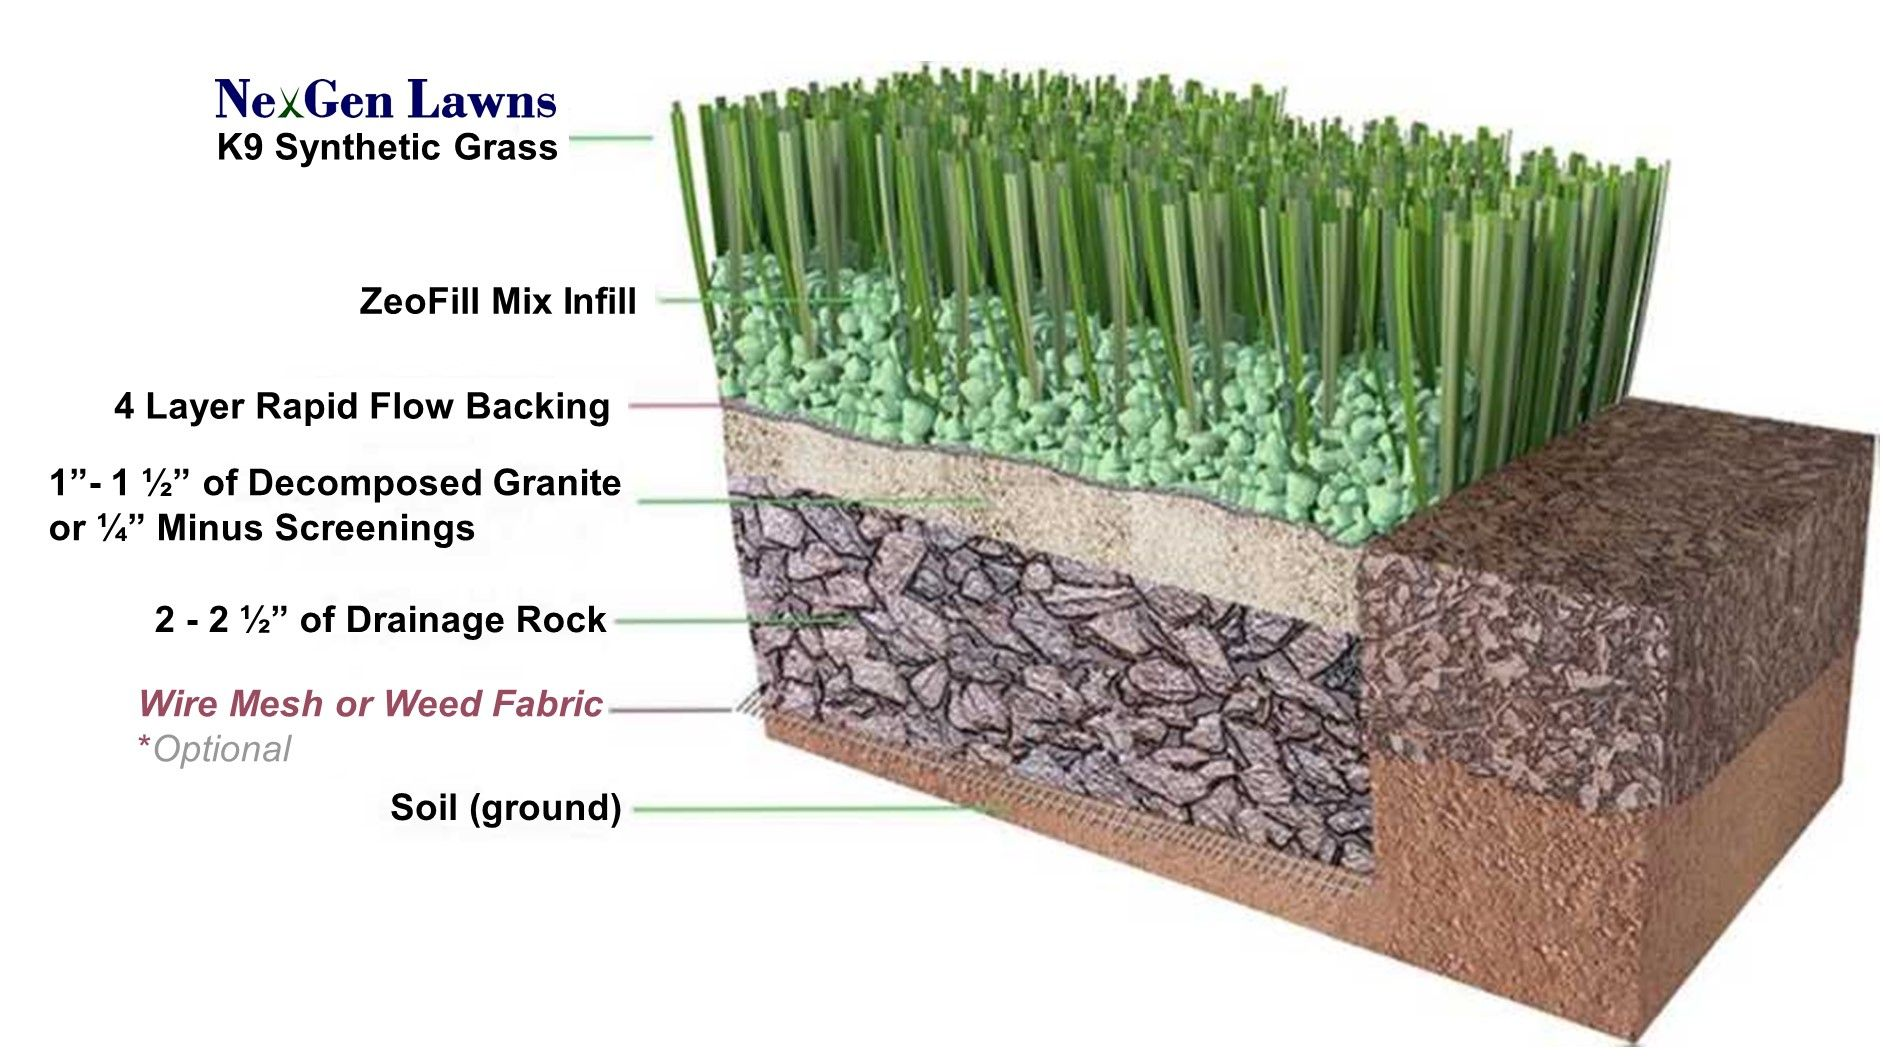 Artificial Grass For Dogs K9 Synthetic Grass for Dogs in